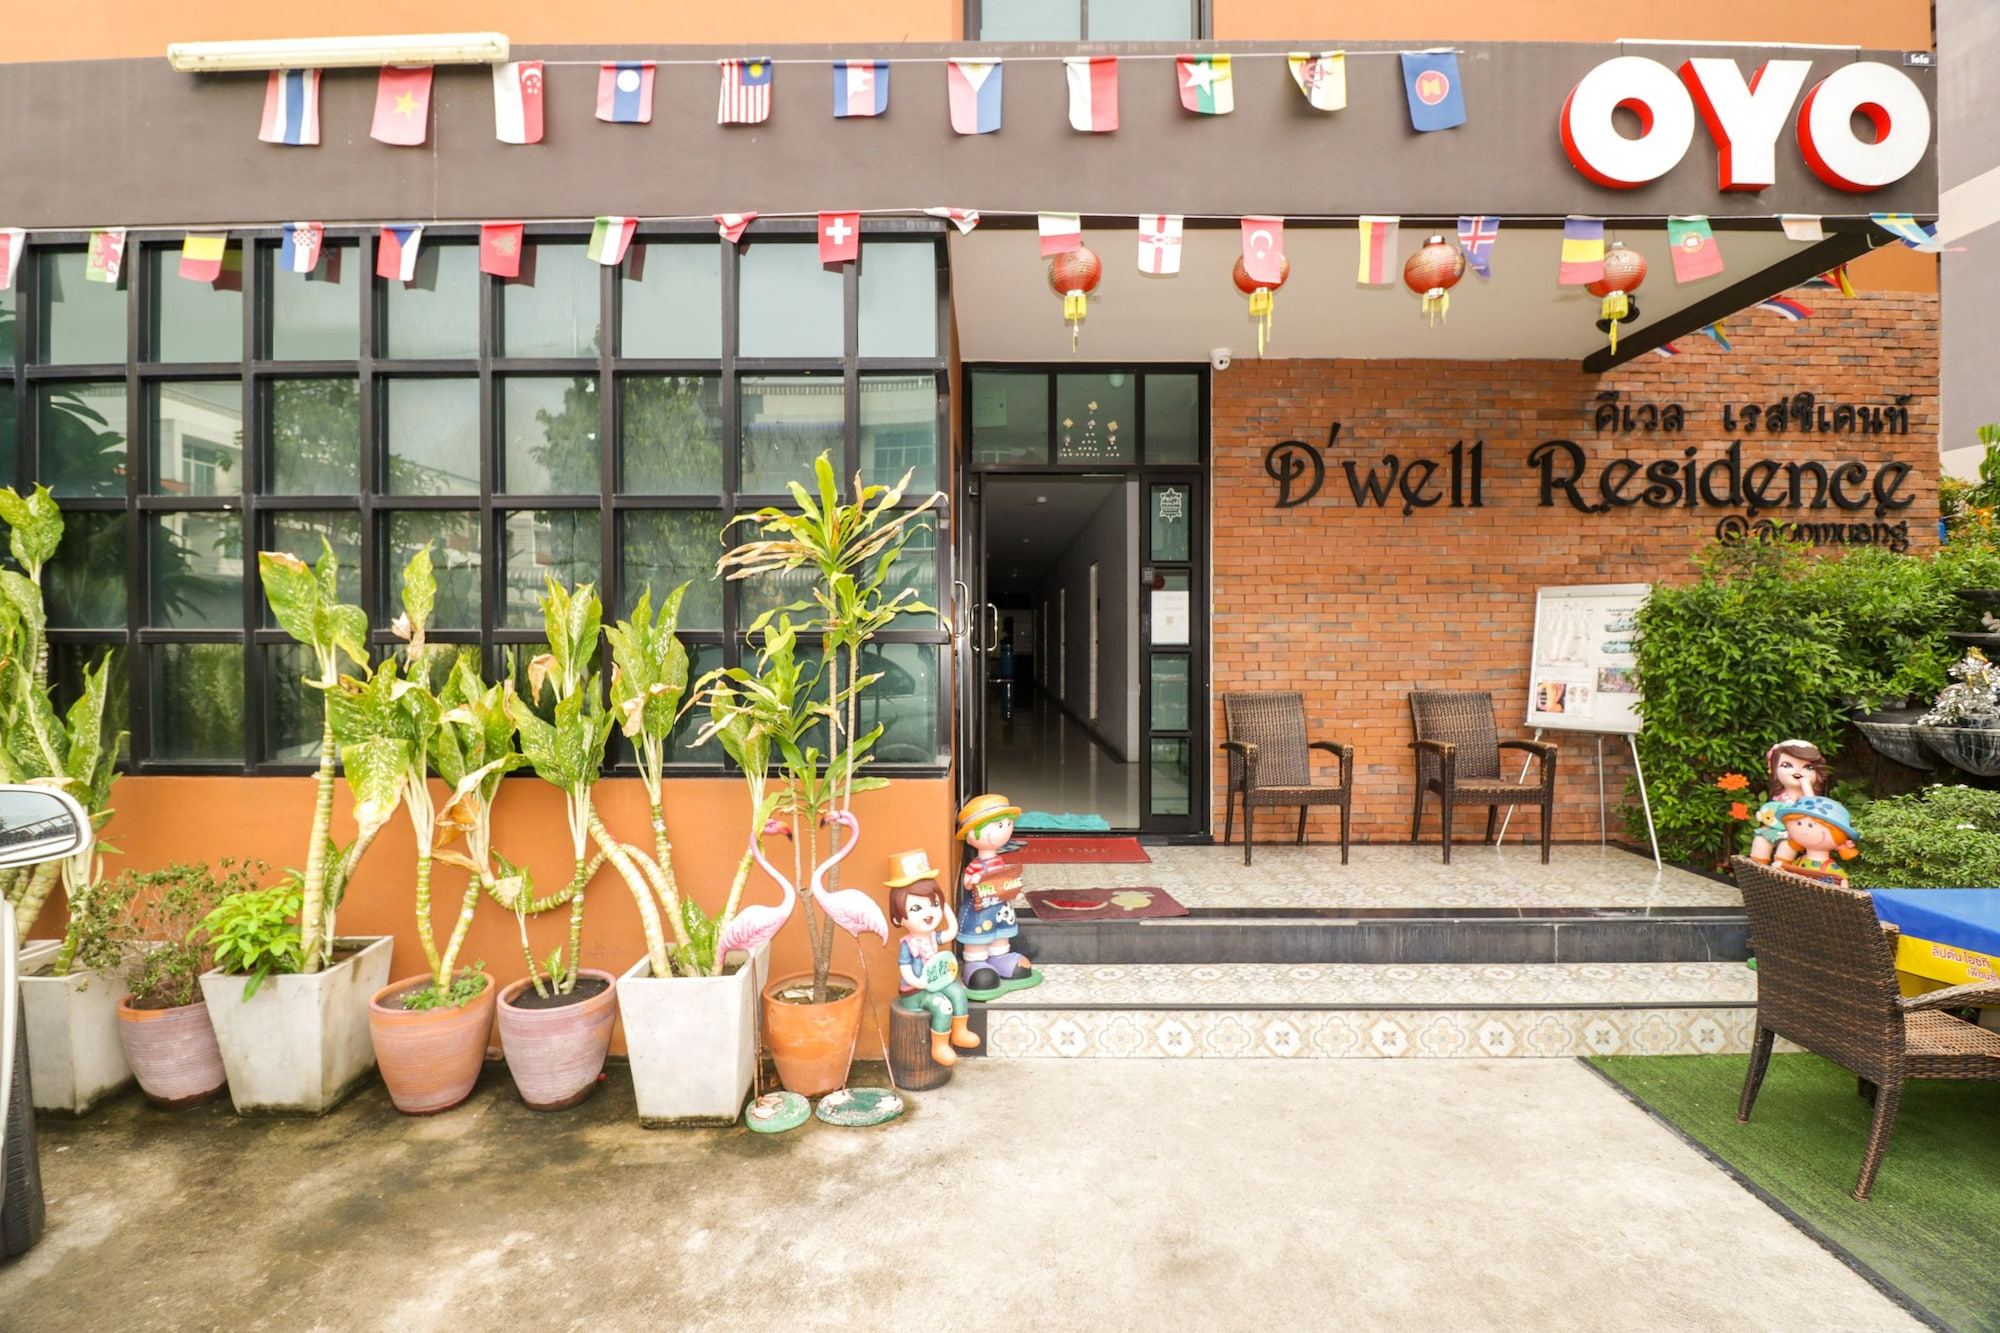 D-Well Residence Don Muang 2, Don Muang